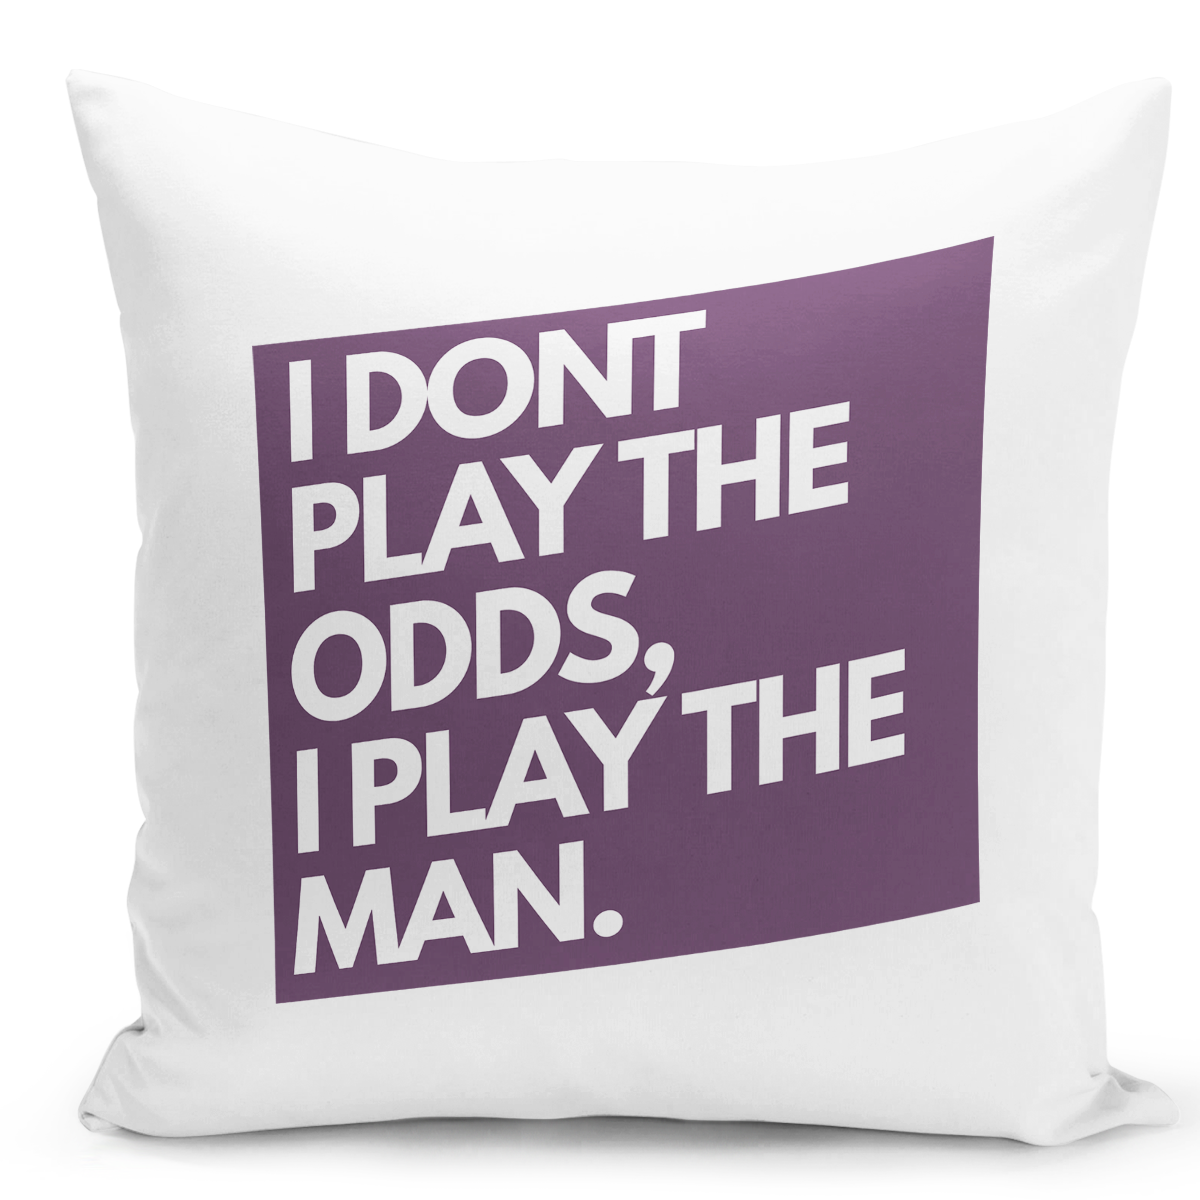 16x16-inch-Throw-Pillow-for-Home-Decor-with-Stuffing-i-Dont-Play-The-Odds-i-Play-The-Man-Self-Image-Pillow-